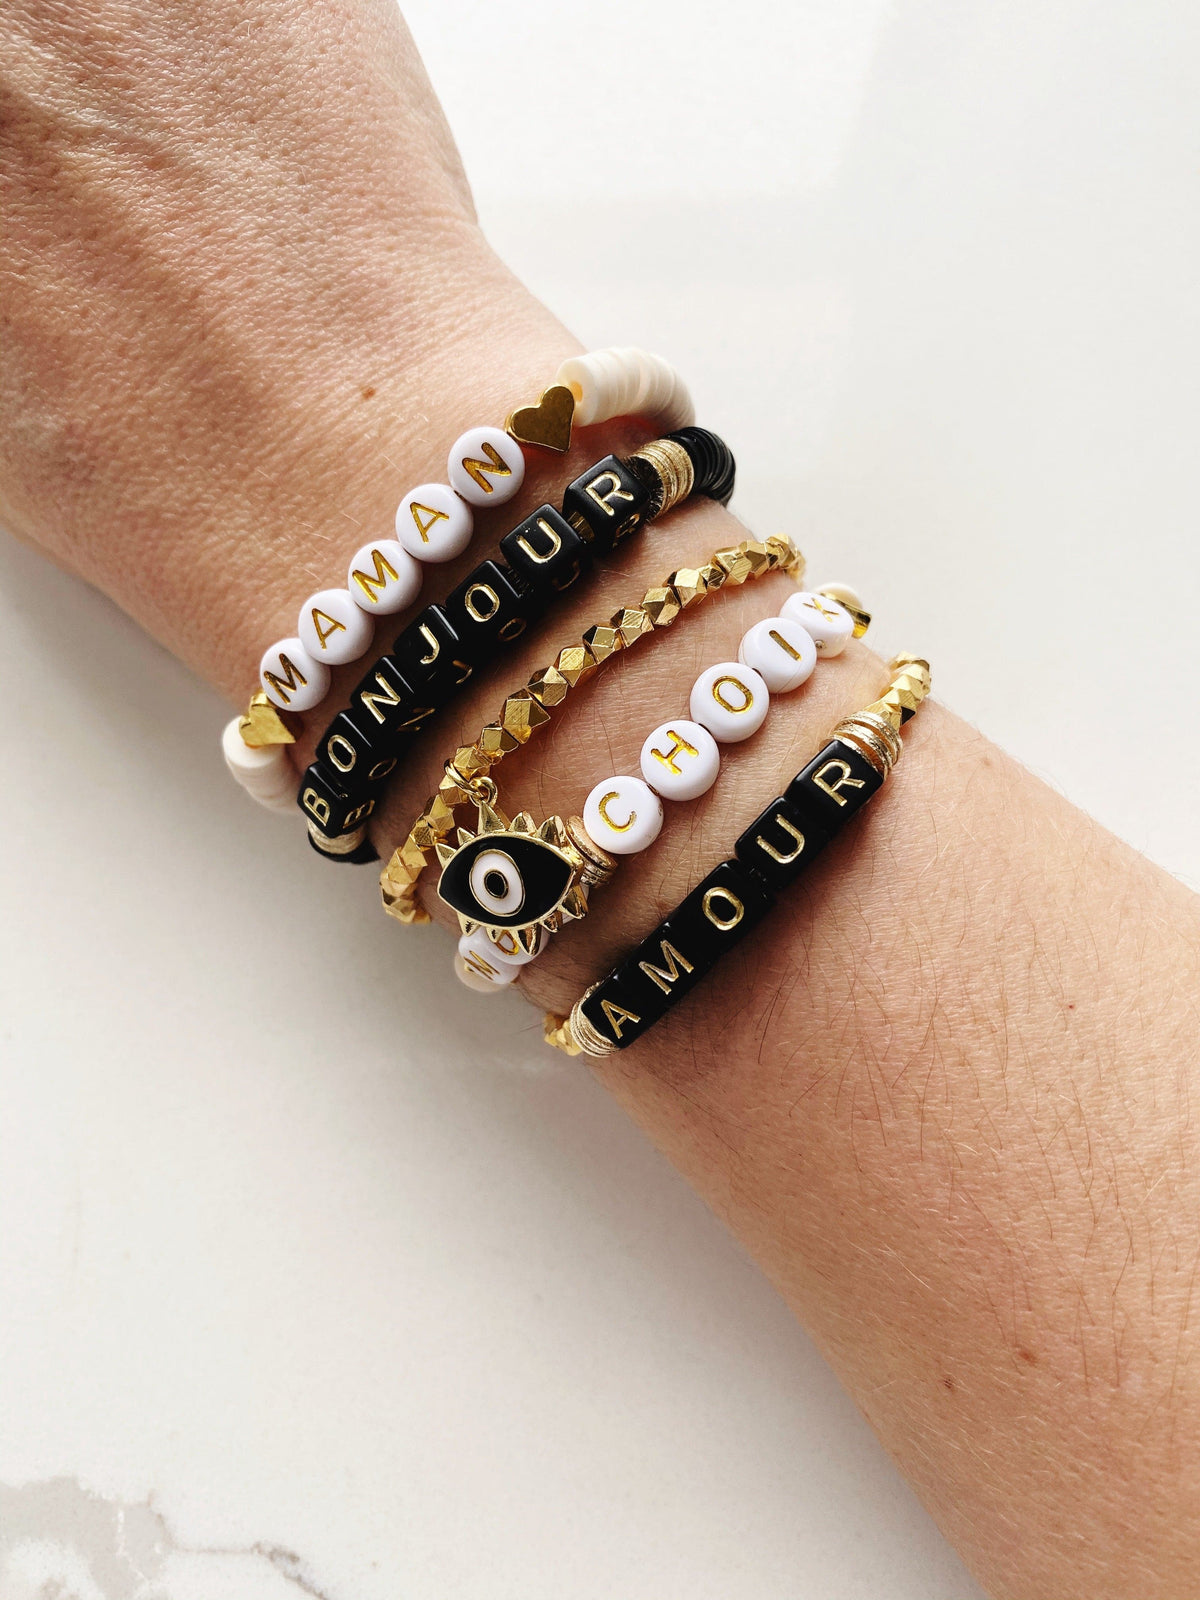 Personalized Beaded Bracelets Black & Gold Letters